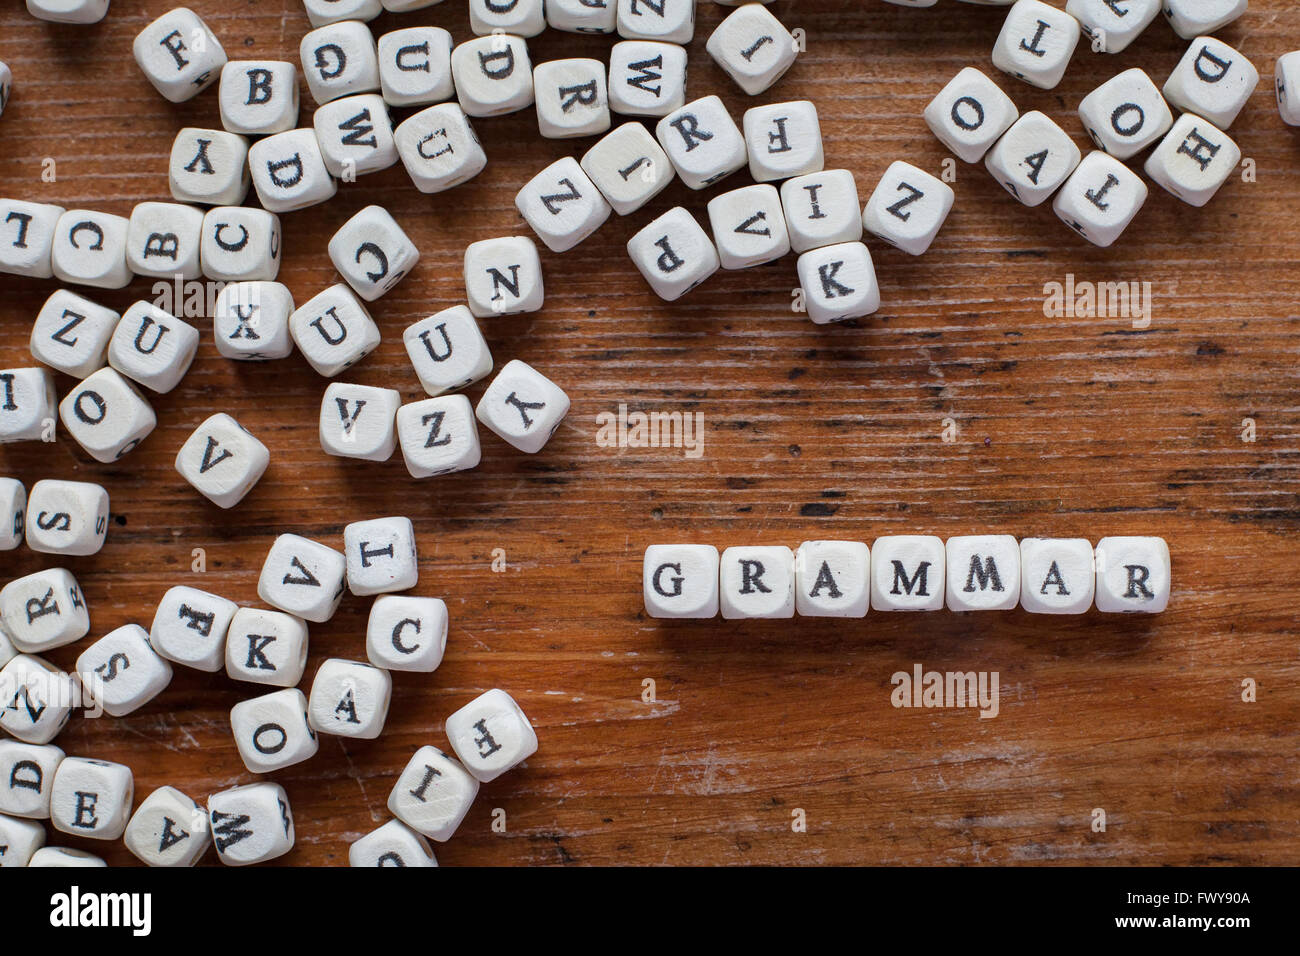 grammar, learn language concept, word from wooden letters - Stock Image